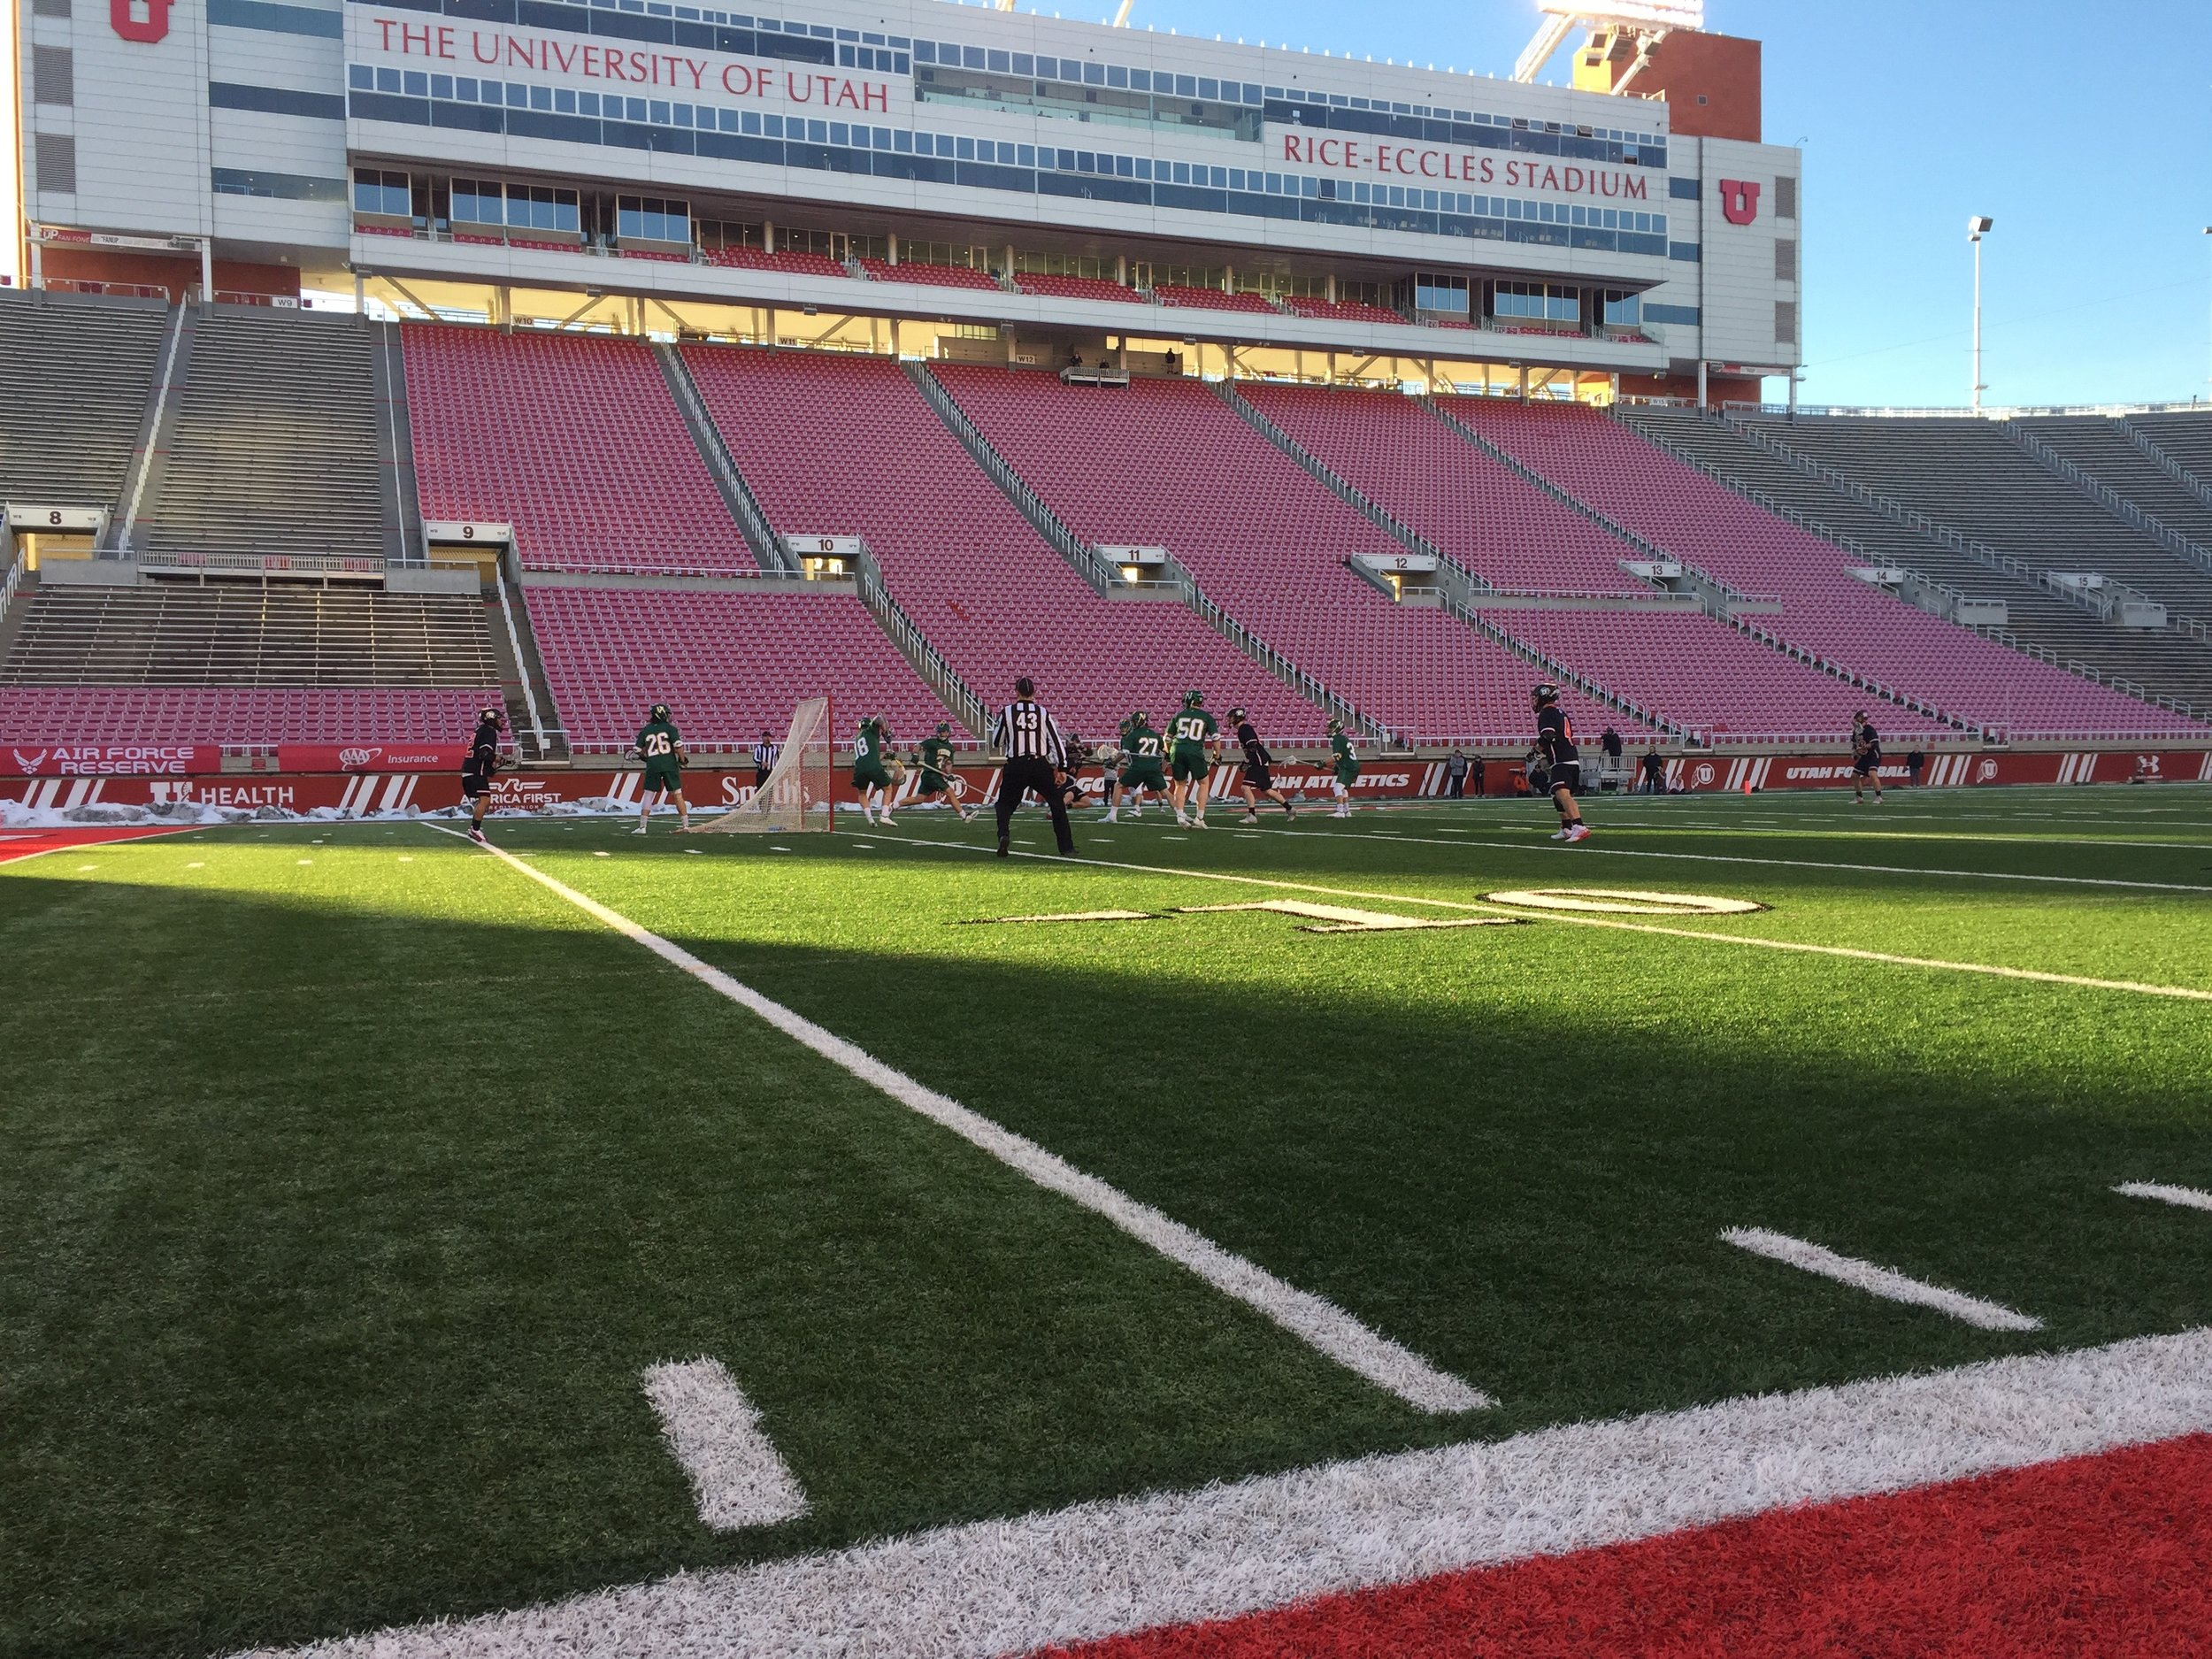 The Utes played the Vermont Catamounts in the first Pac-12 DI lacrosse game ever